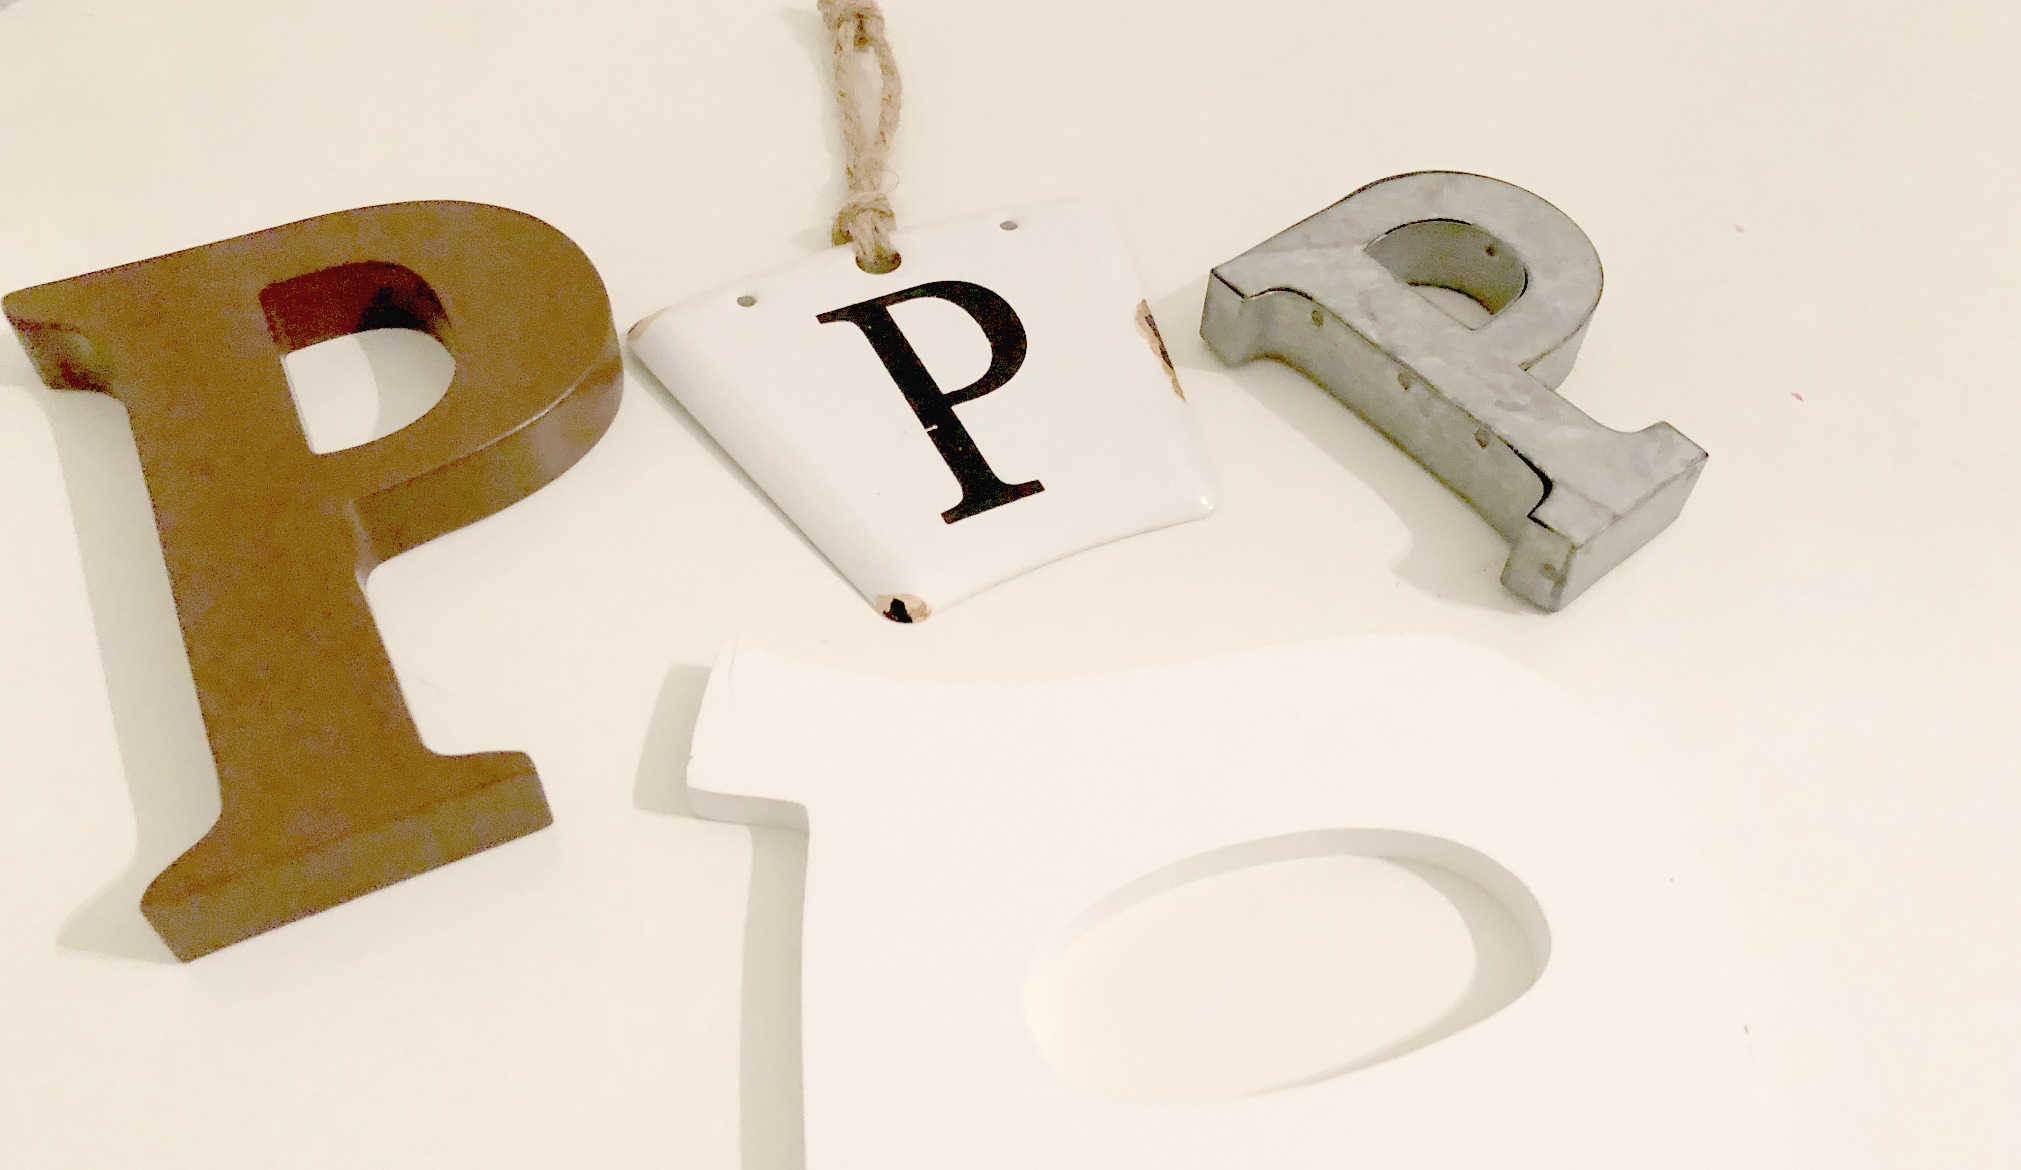 This simple fast home decor idea uses the letter P in different materials.